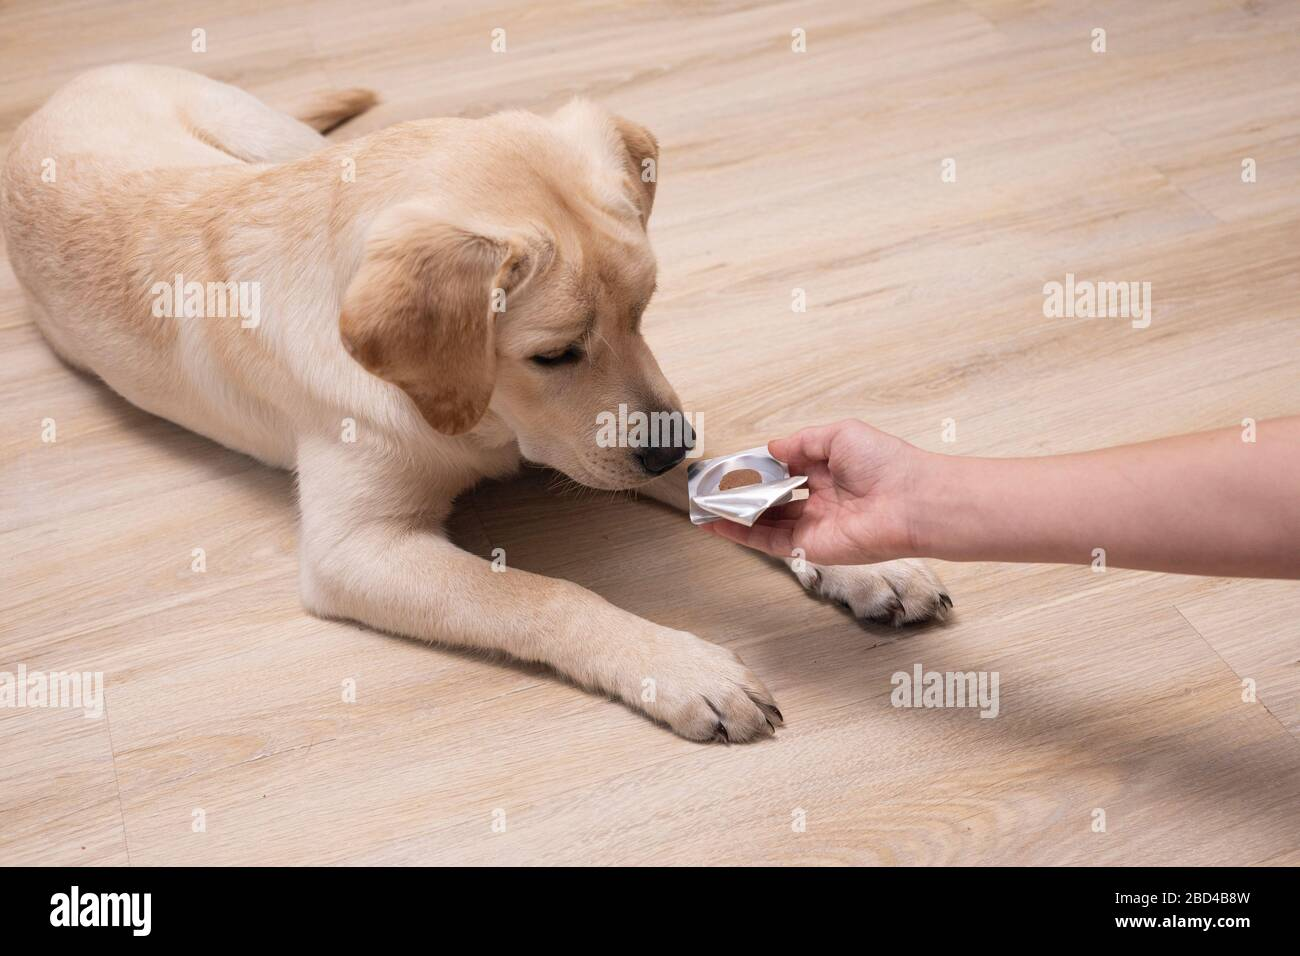 Owner giving medicament to puppy. veterinary medicine, pet, animals, health care concept. Stock Photo